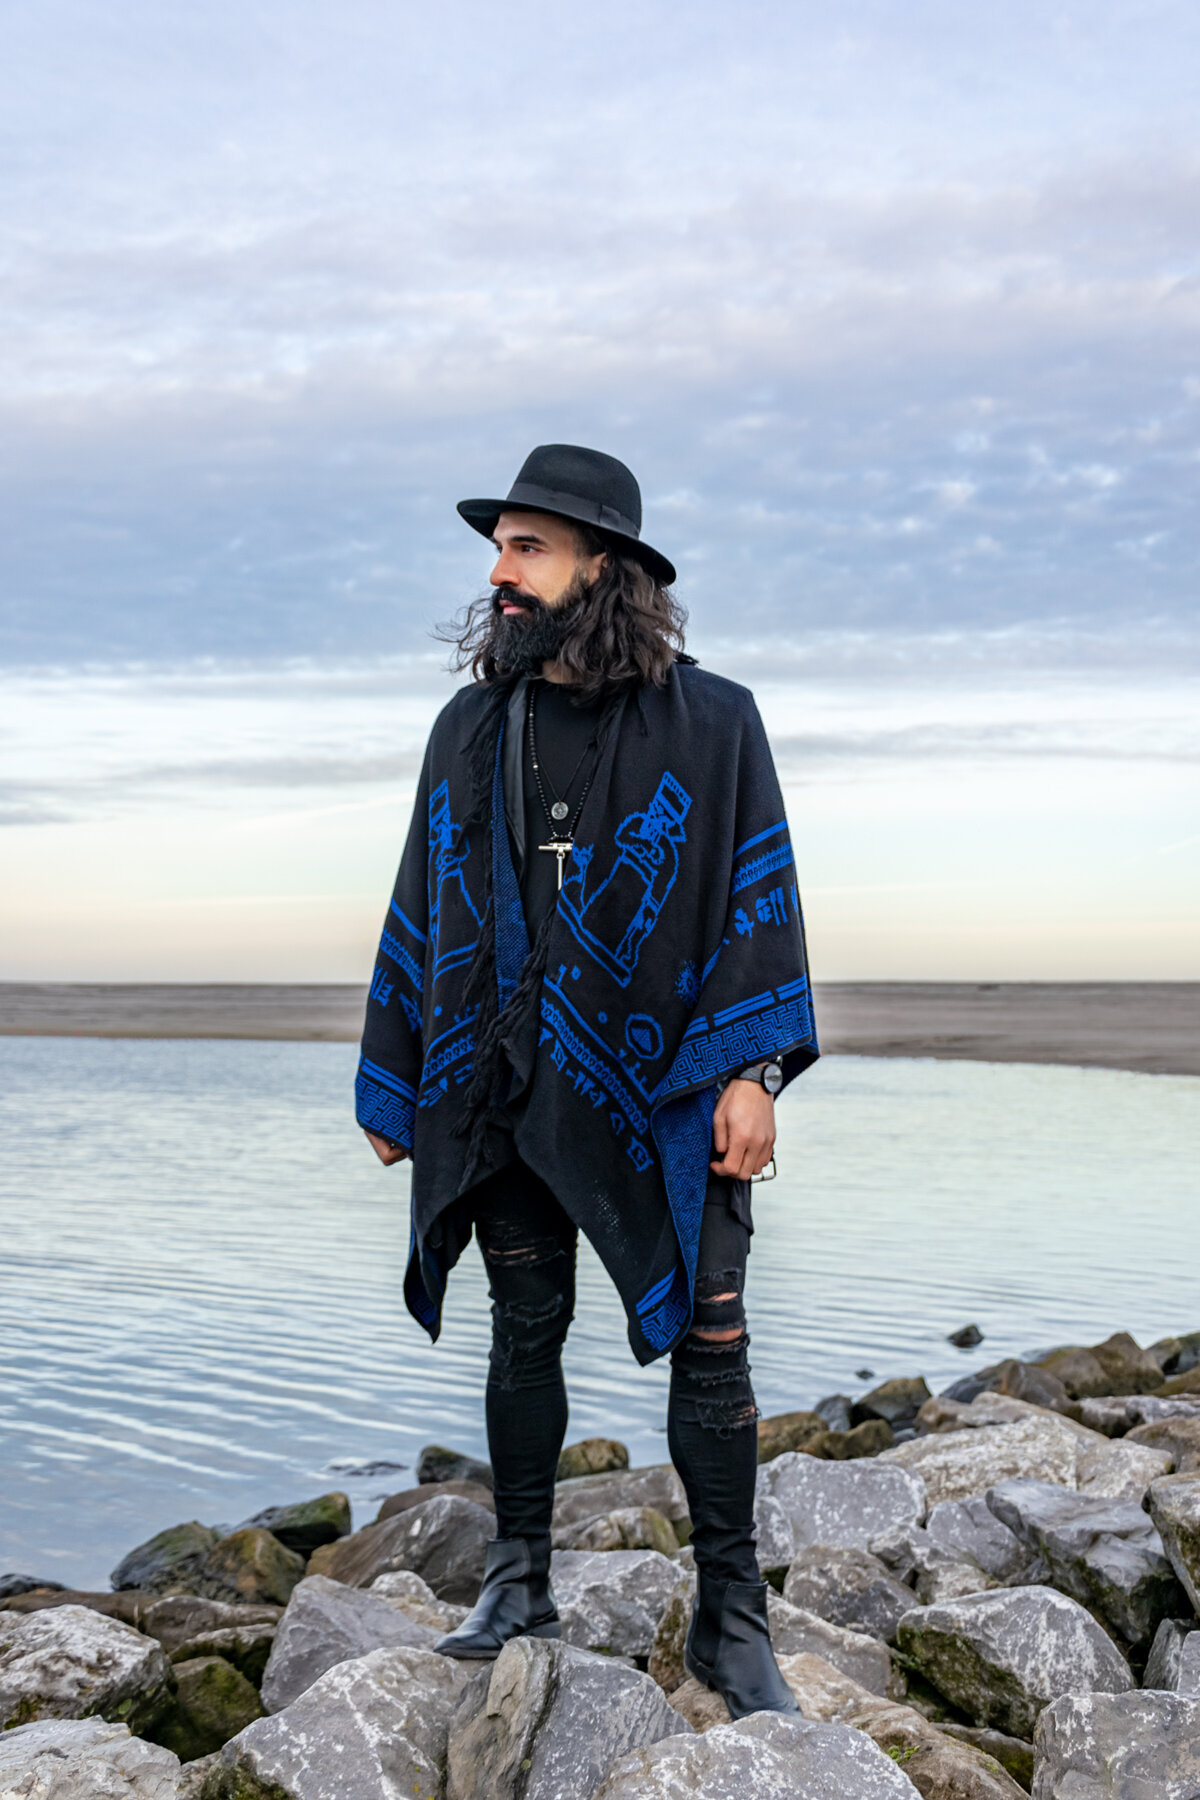 black blue poncho, the gardens of babylon merch, bohemian style outfit, festival clothing, outerwear